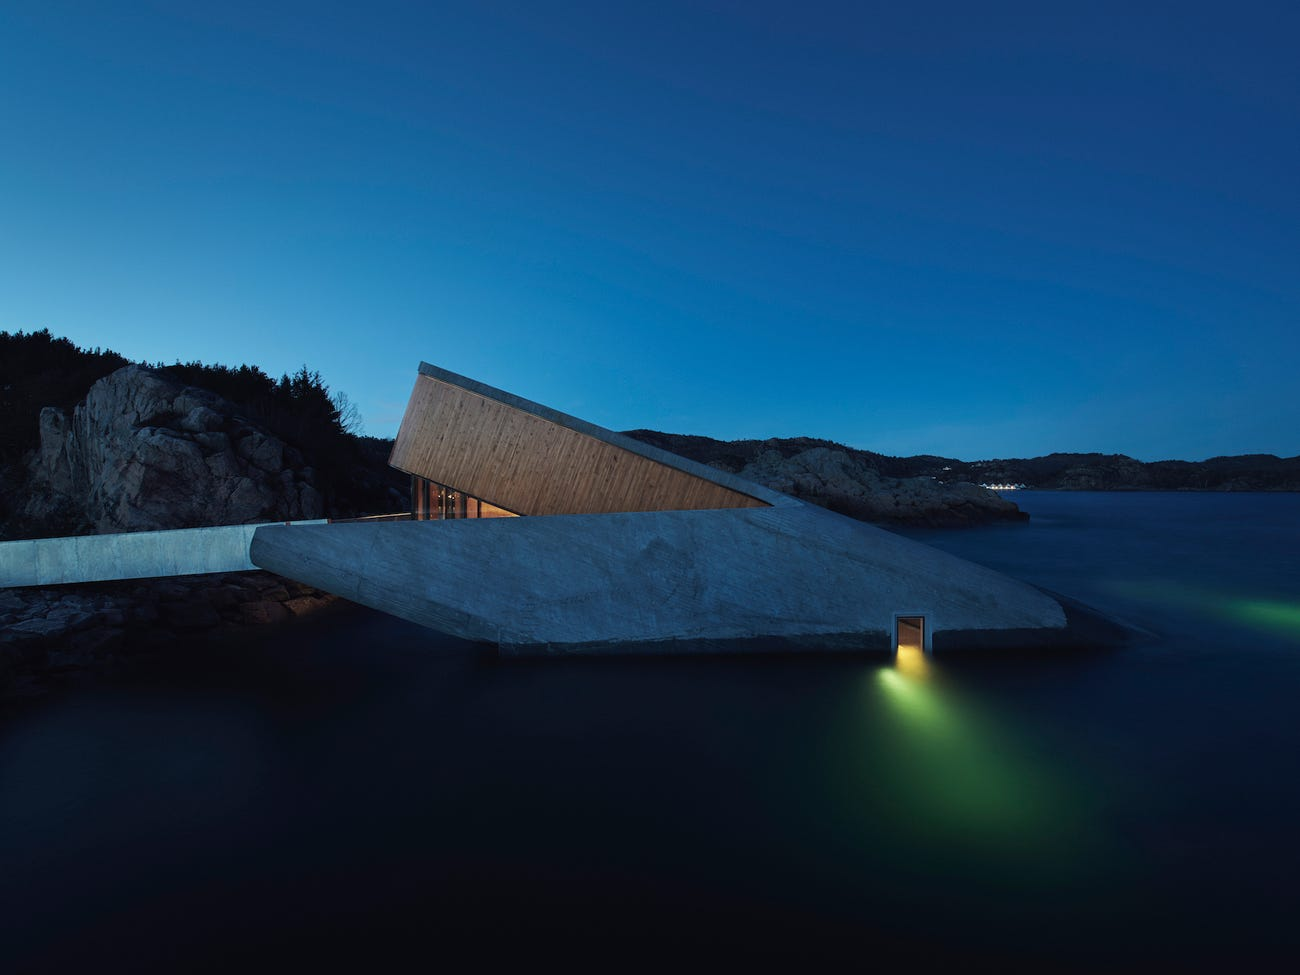 The world's largest underwater restaurant in Norway was just named one of the 'world's greatest places.' Take a look inside, where diners can watch marine life swim by through a 36-foot window.